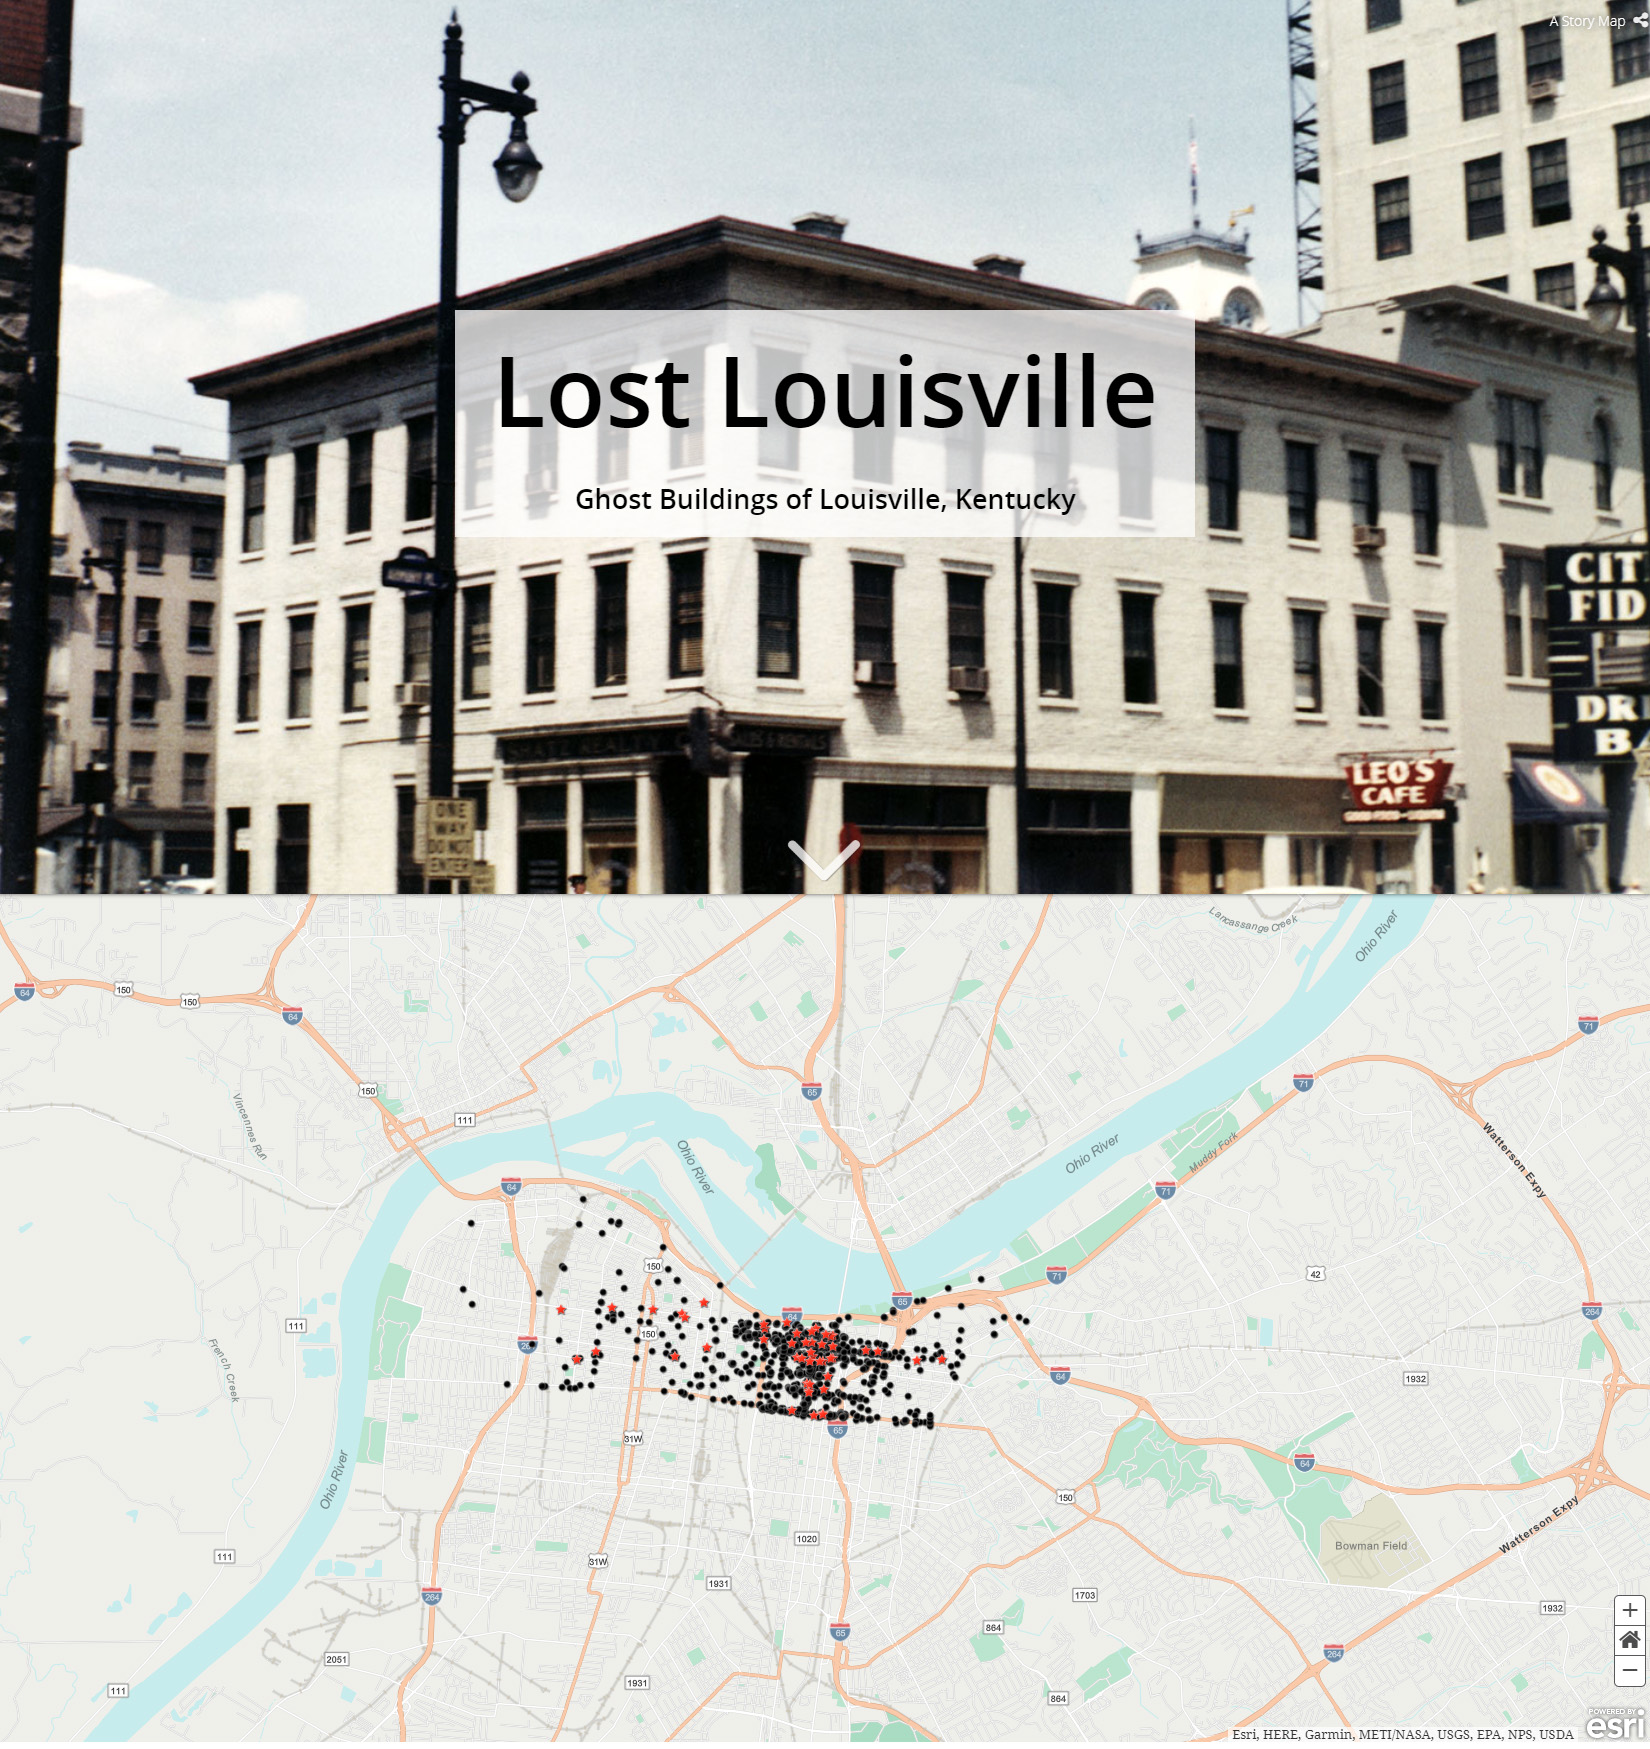 Lost Louisville home page